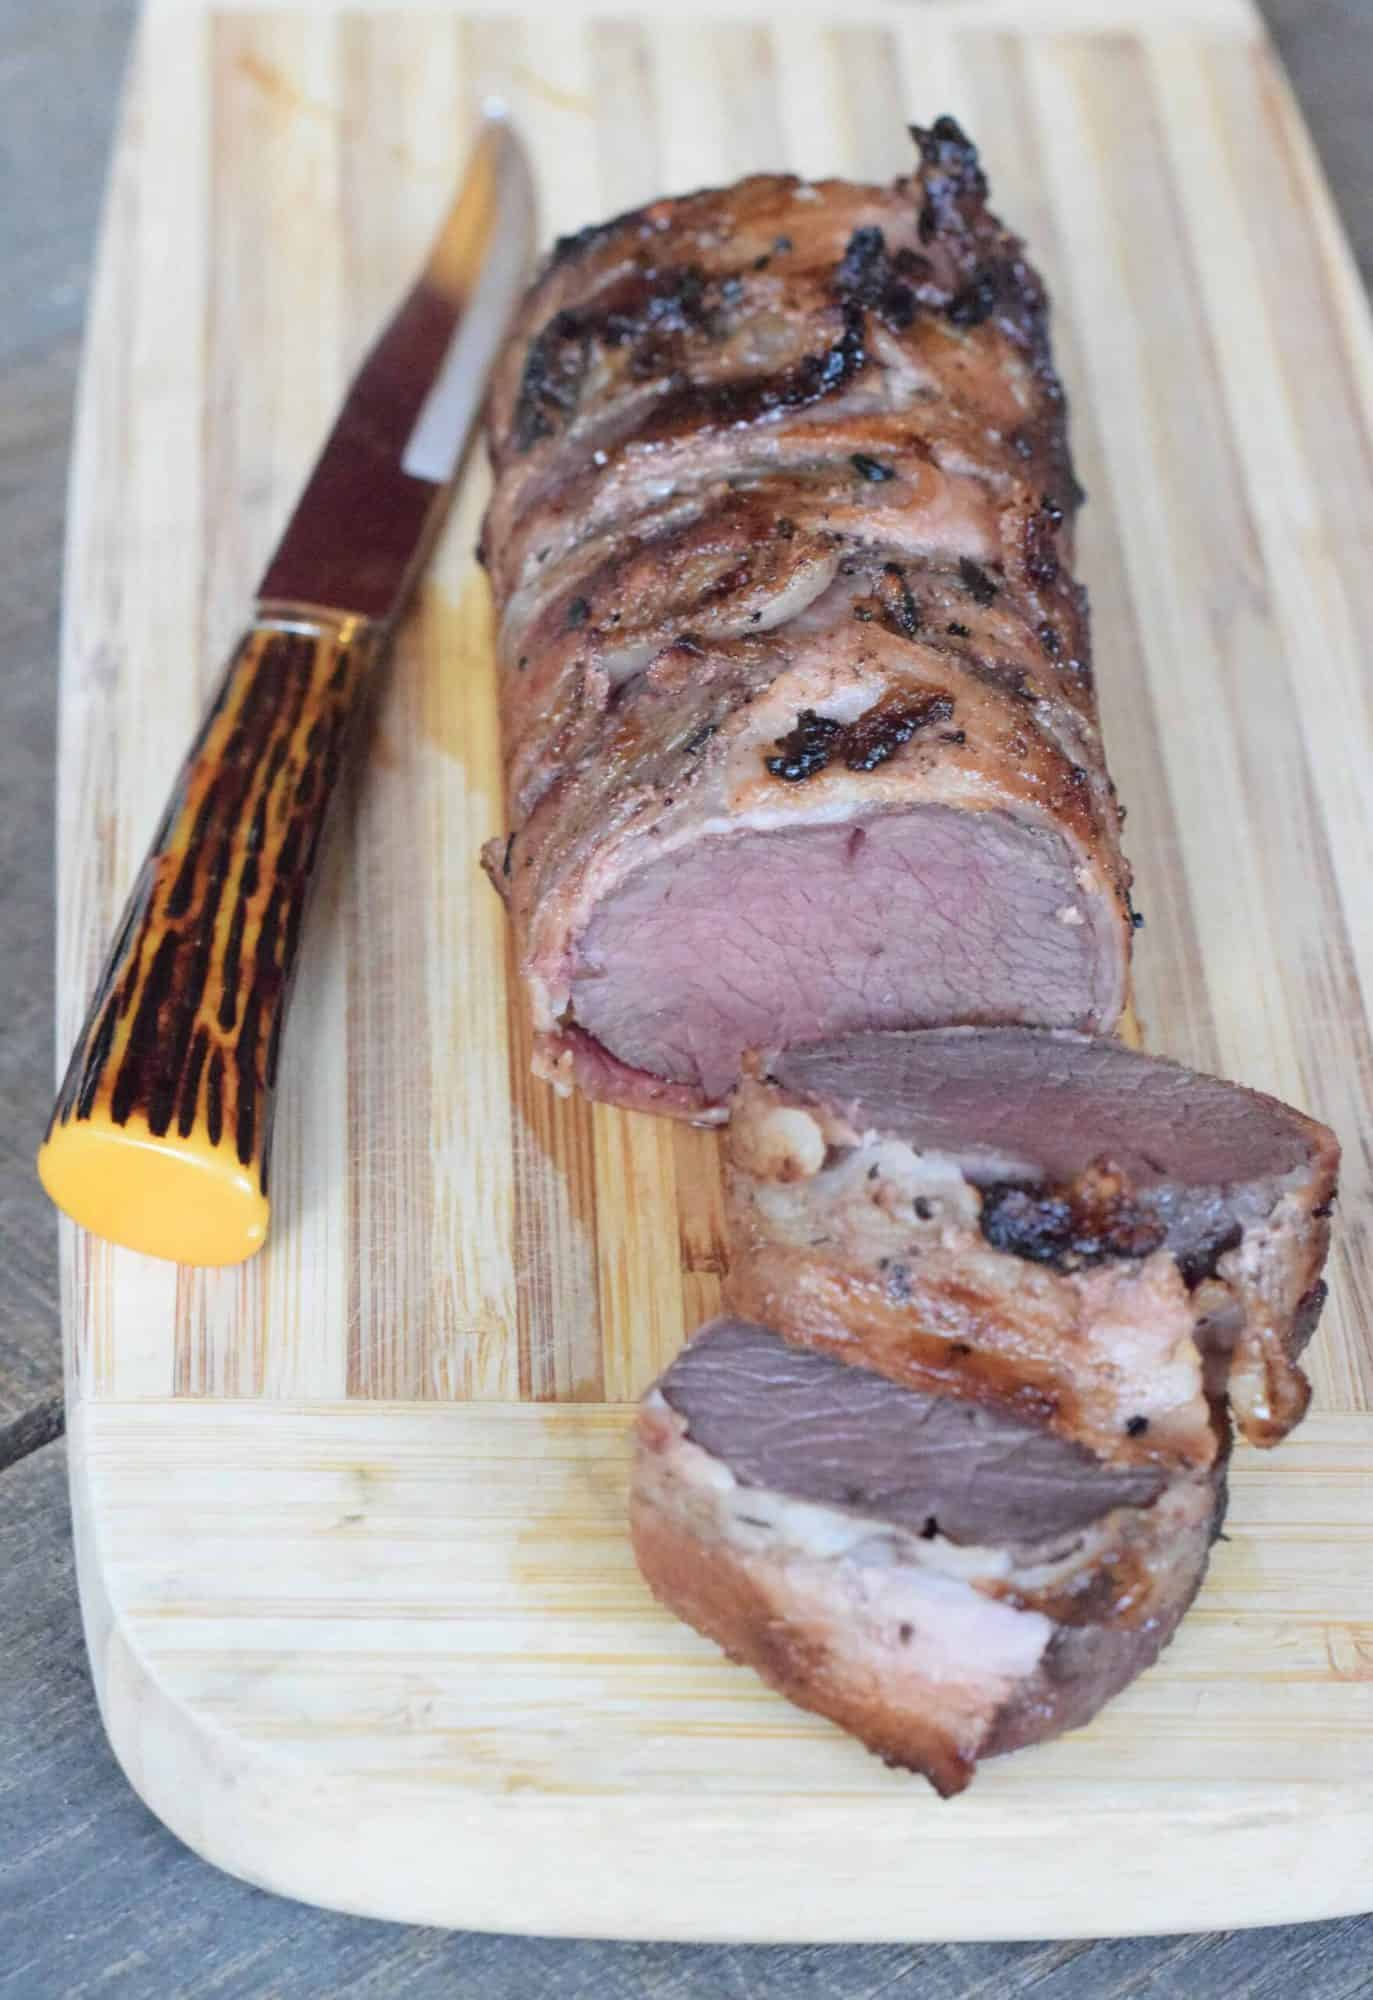 Slices of bacon-wrapped venison backstrap roast on a wooden cutting board and a rustic knife.